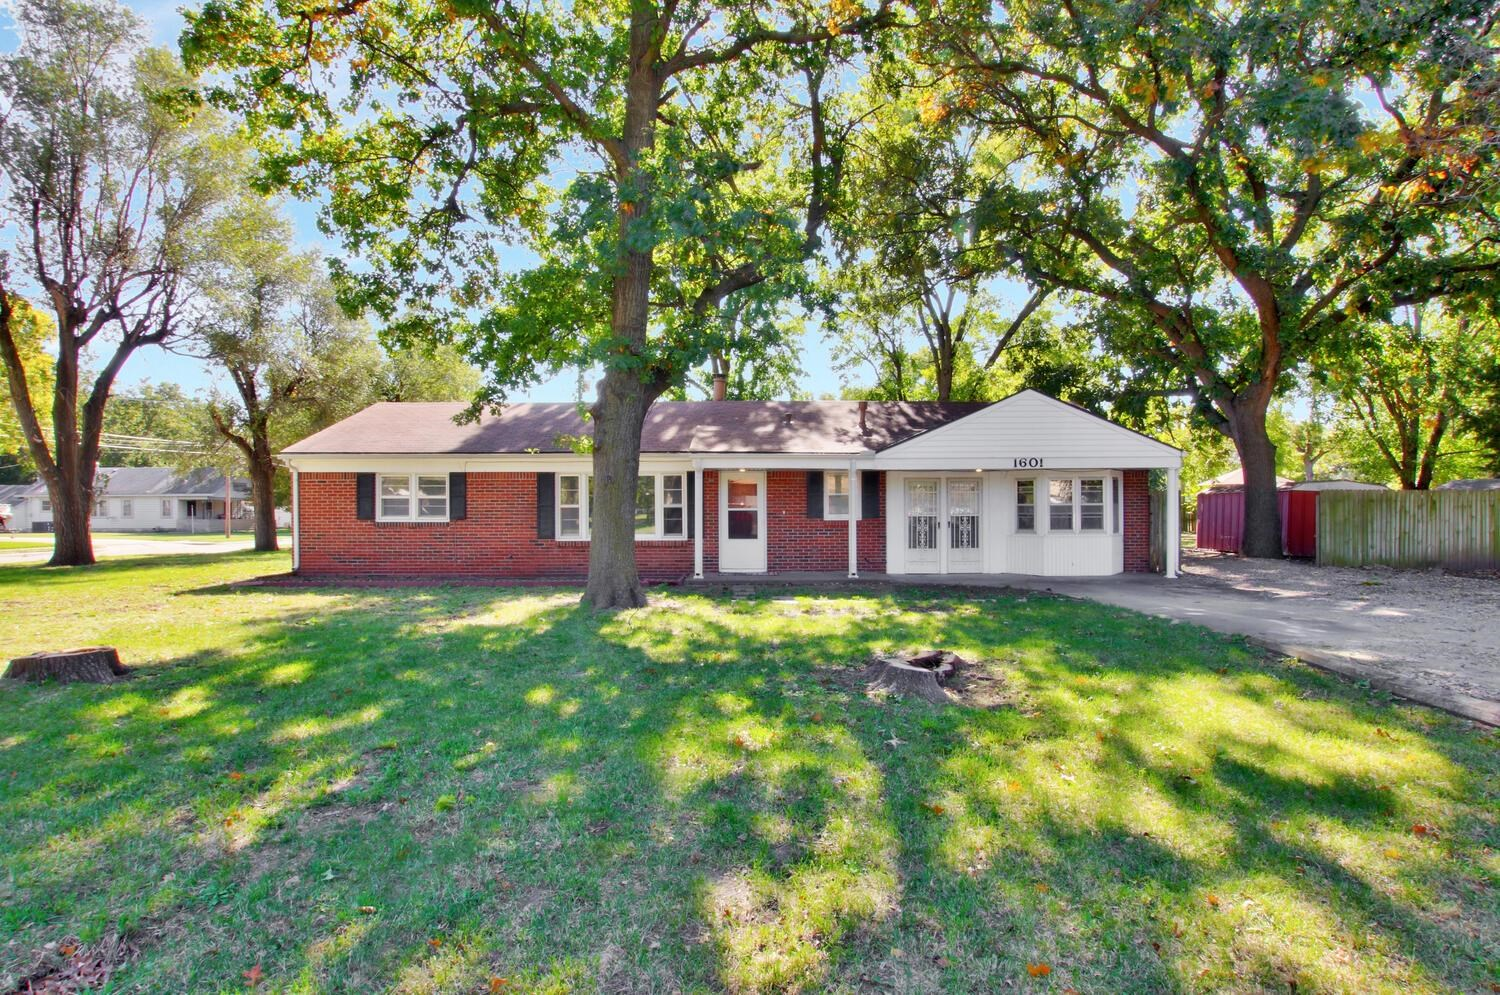 Move in ready 3BR 2 BA home in well desired neighborhood with zero entry, no HOA, and large lot with